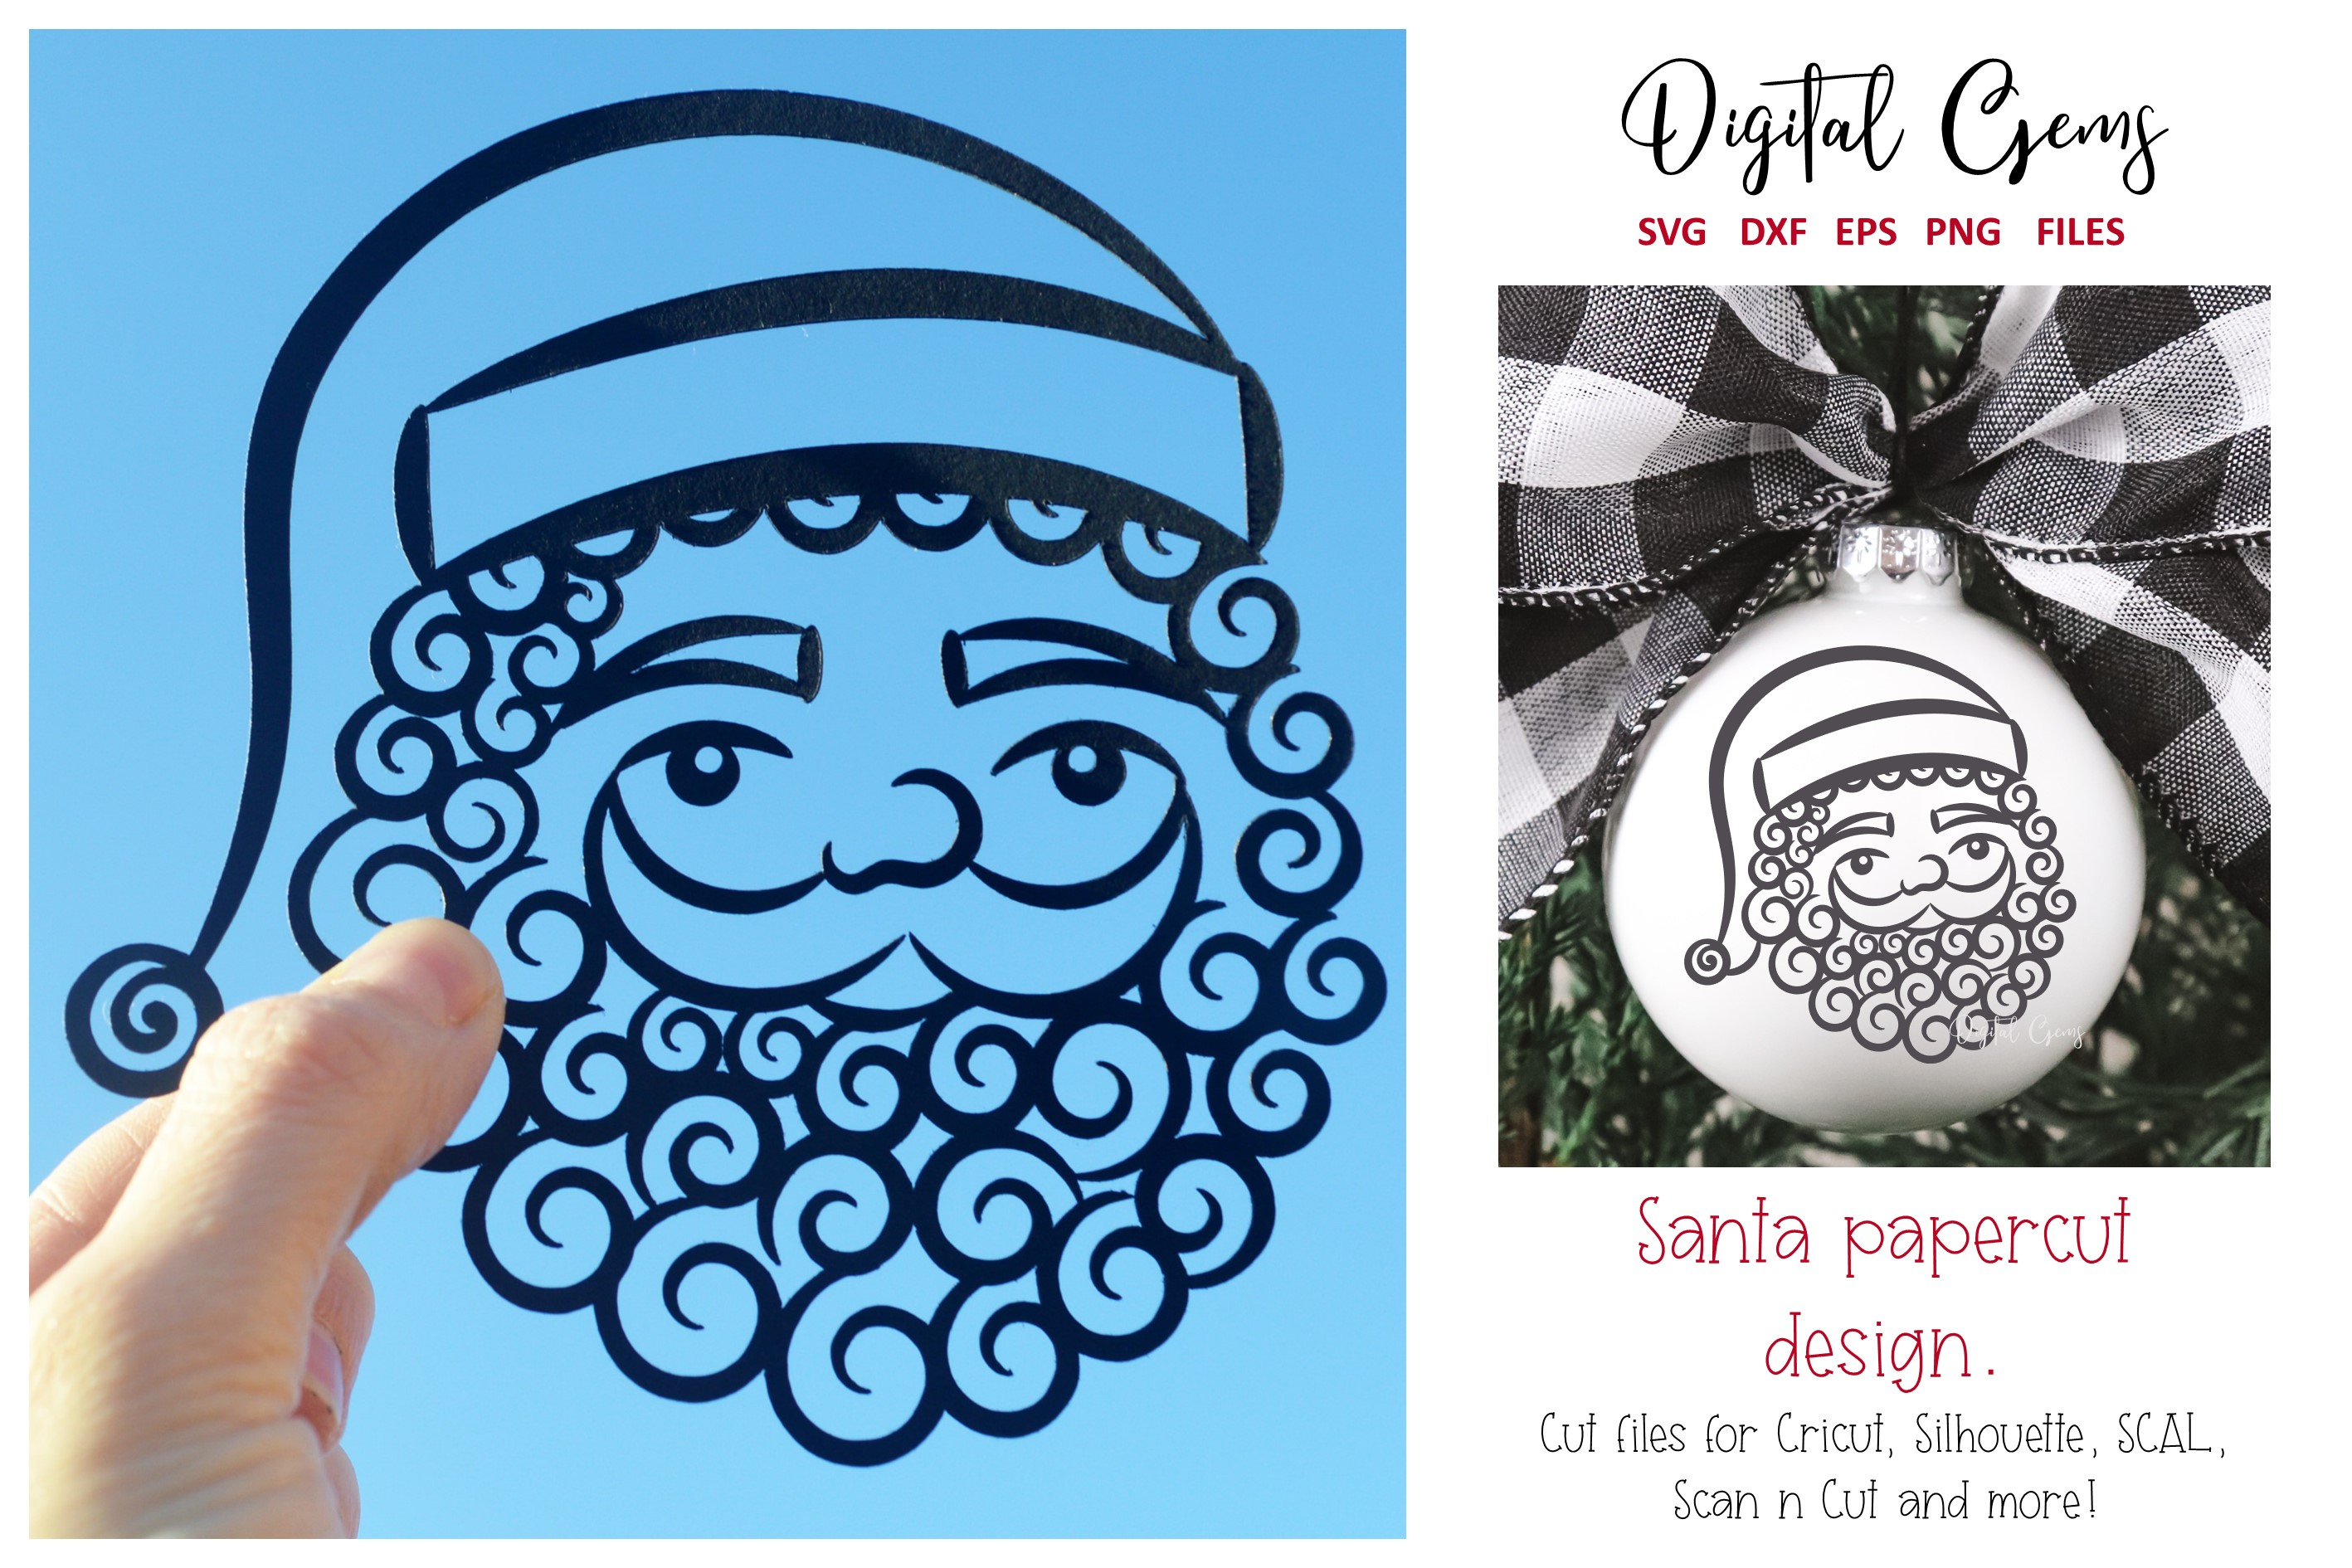 Download Free Santa Papercut Design Graphic By Digital Gems Creative Fabrica for Cricut Explore, Silhouette and other cutting machines.